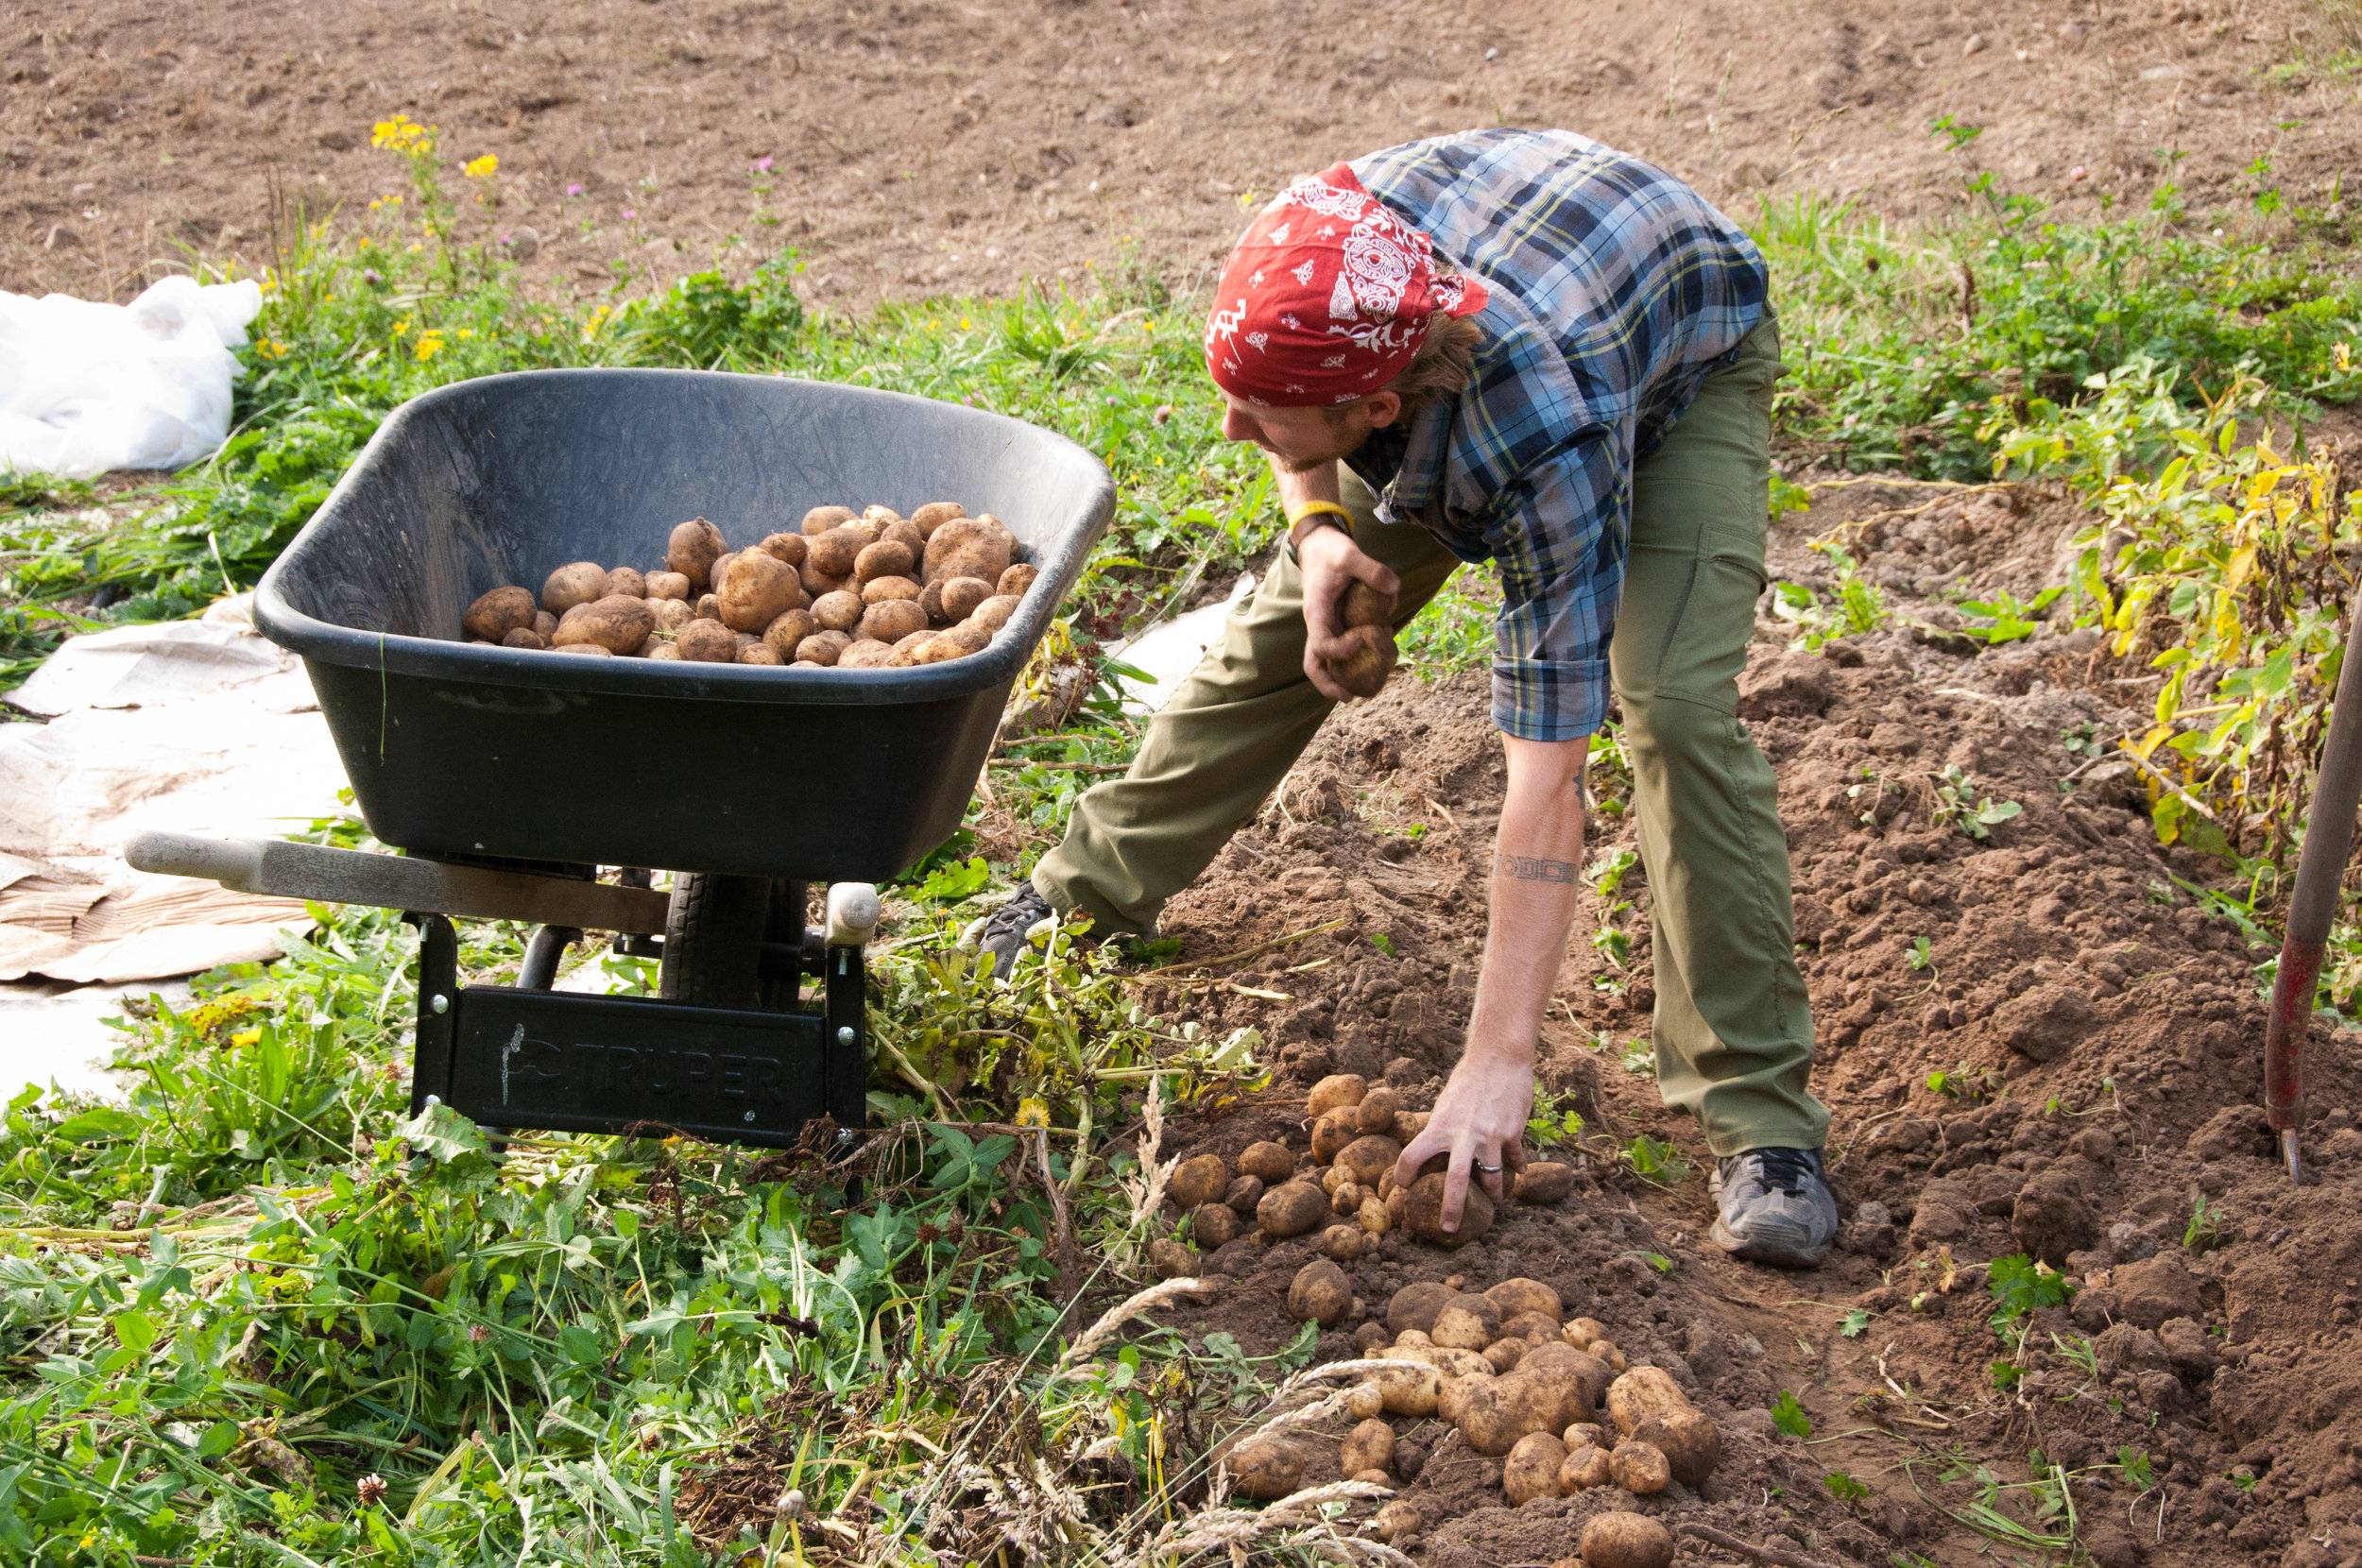 It was digging potatoes that helped me fall in love with farming in the first place.